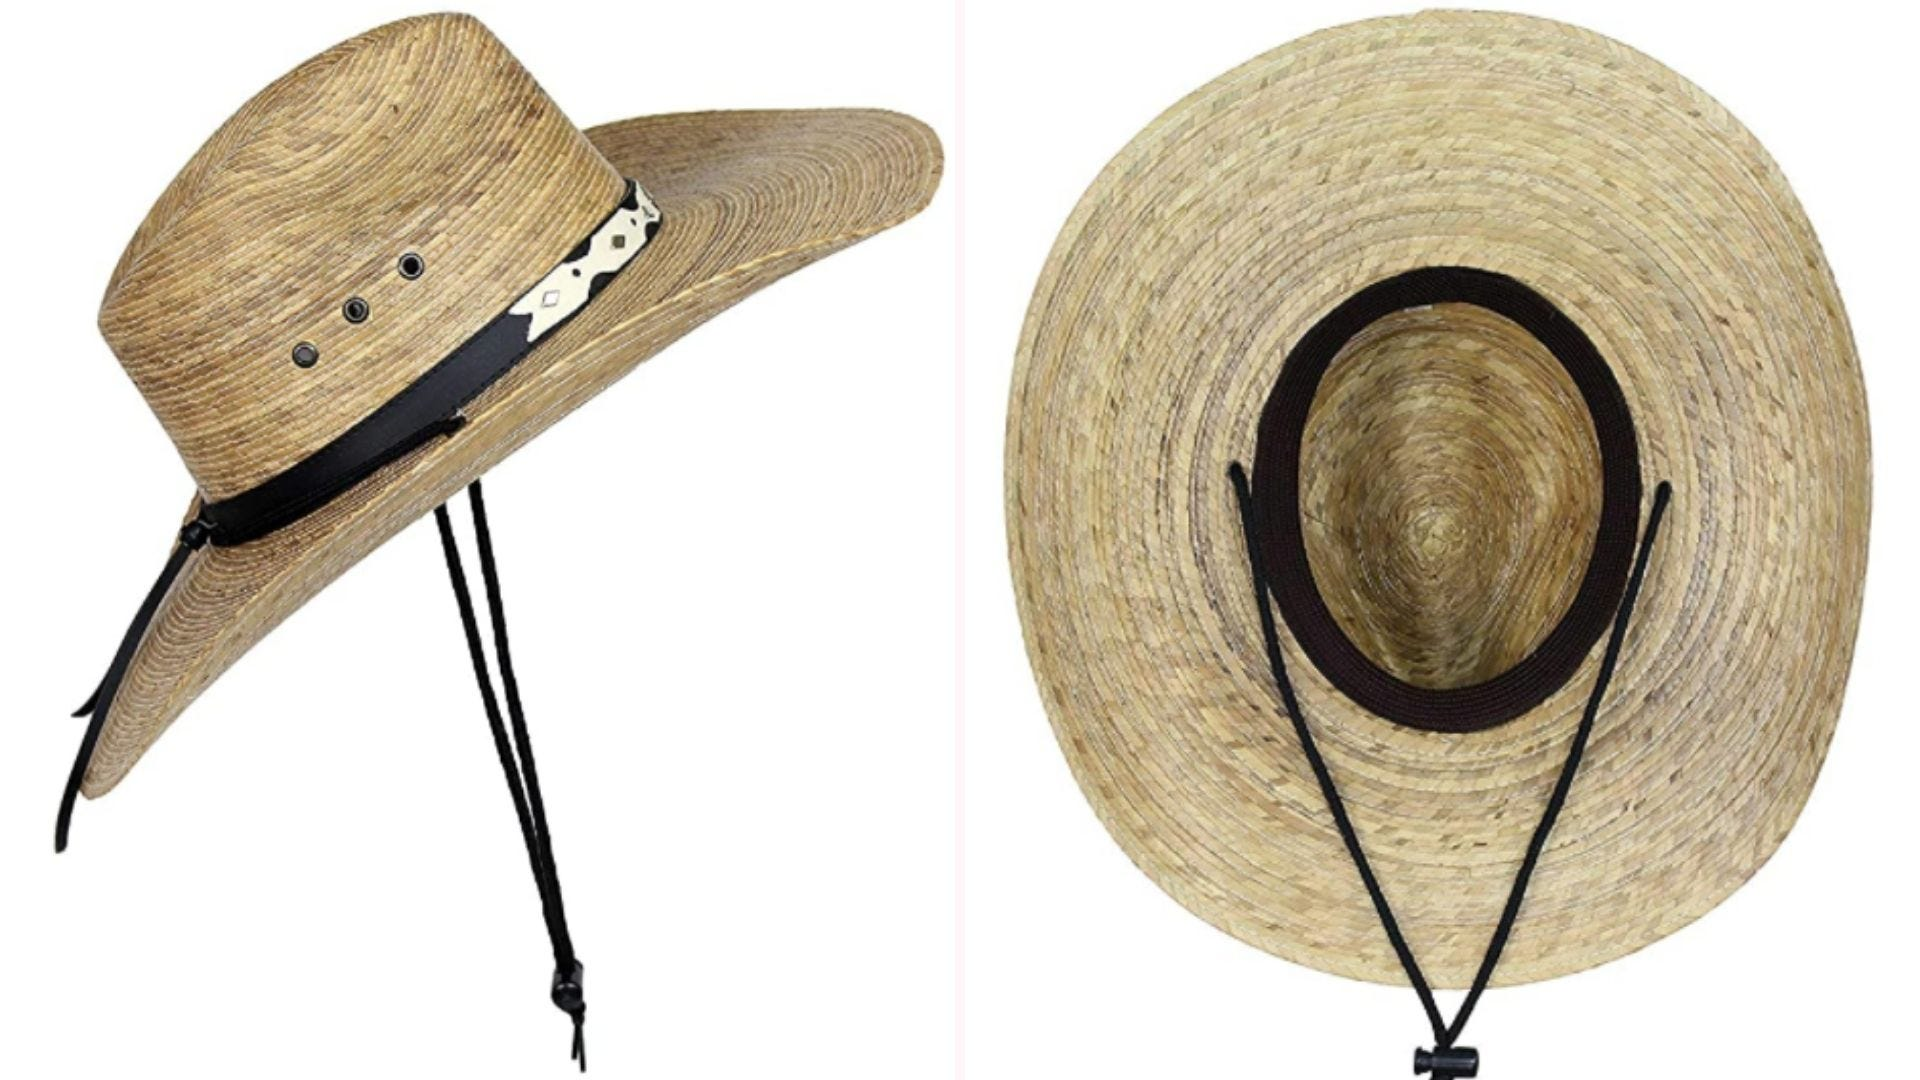 On the left, a cowboy had made from palm leaves features a faux leather hatband at the base of the crown and a 12-inch chinstrap. On the right is the underside of the hat, which features an elastic closure.